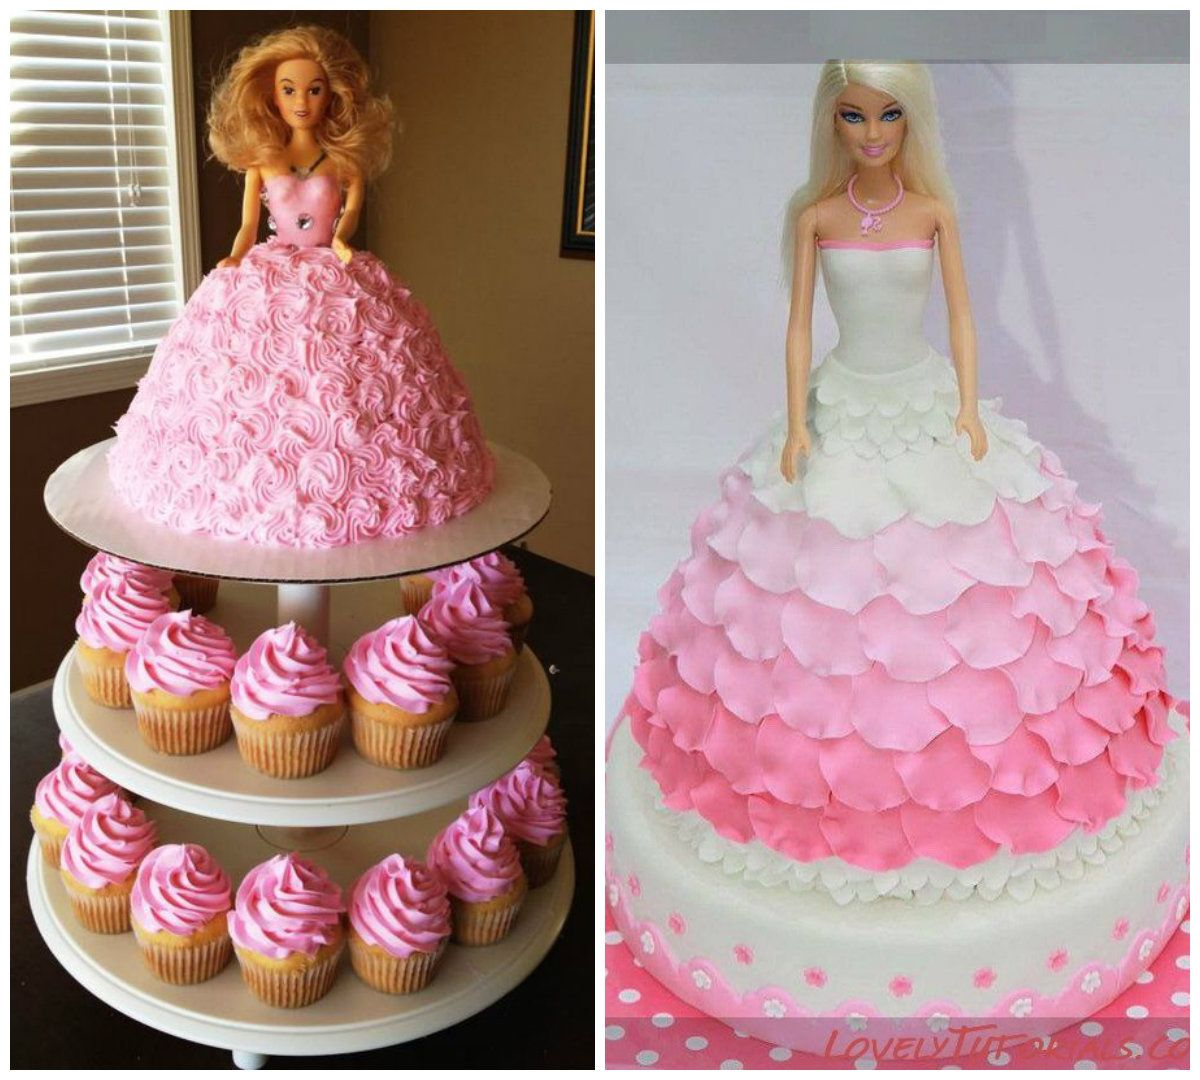 Birthday Cake Designs Barbie : Image result for barbie birthday cake ideas mackinley ...